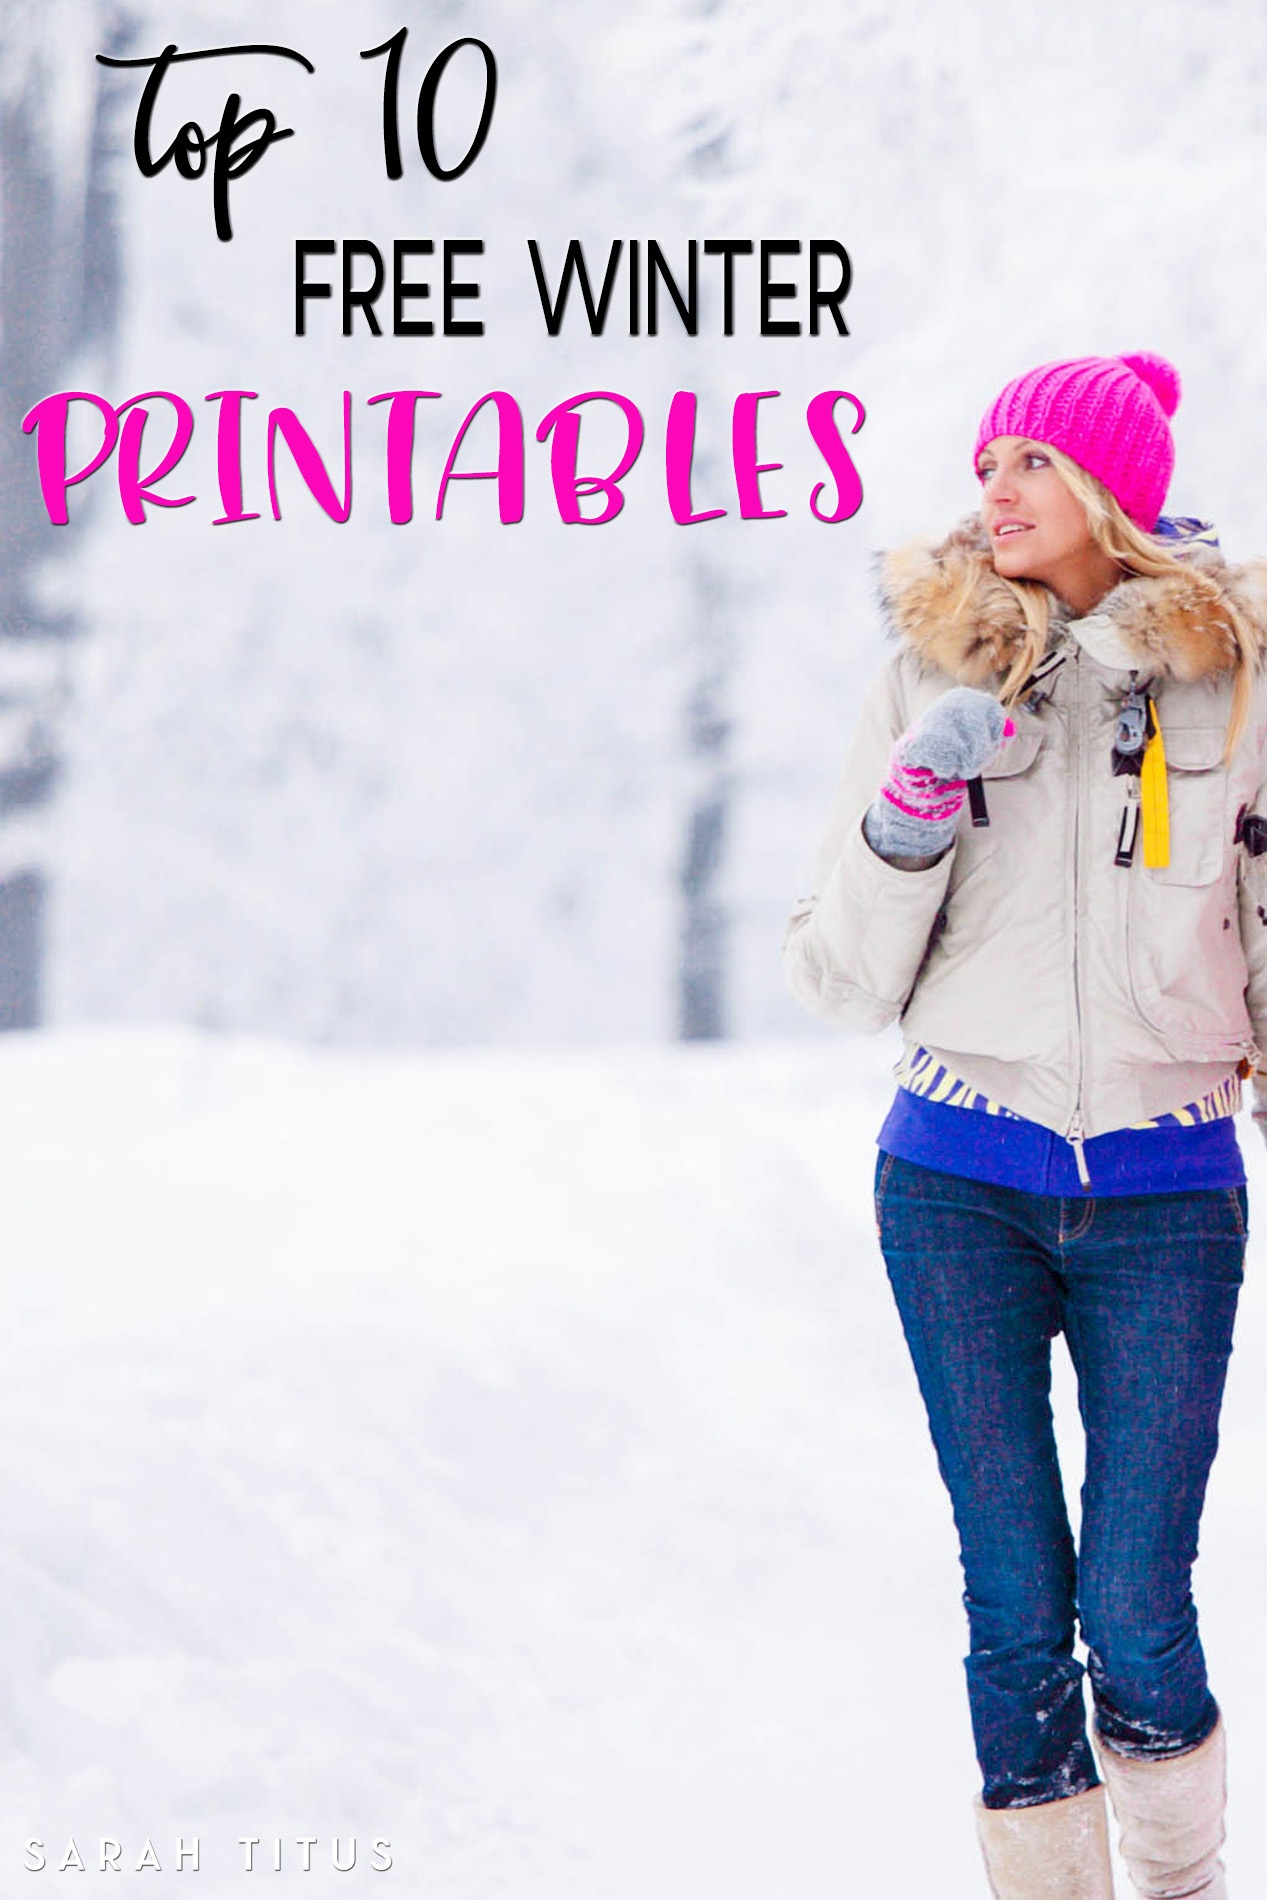 Top 10 Free Winter Printables - Sarah Titus - Free Printable Winterization Stickers